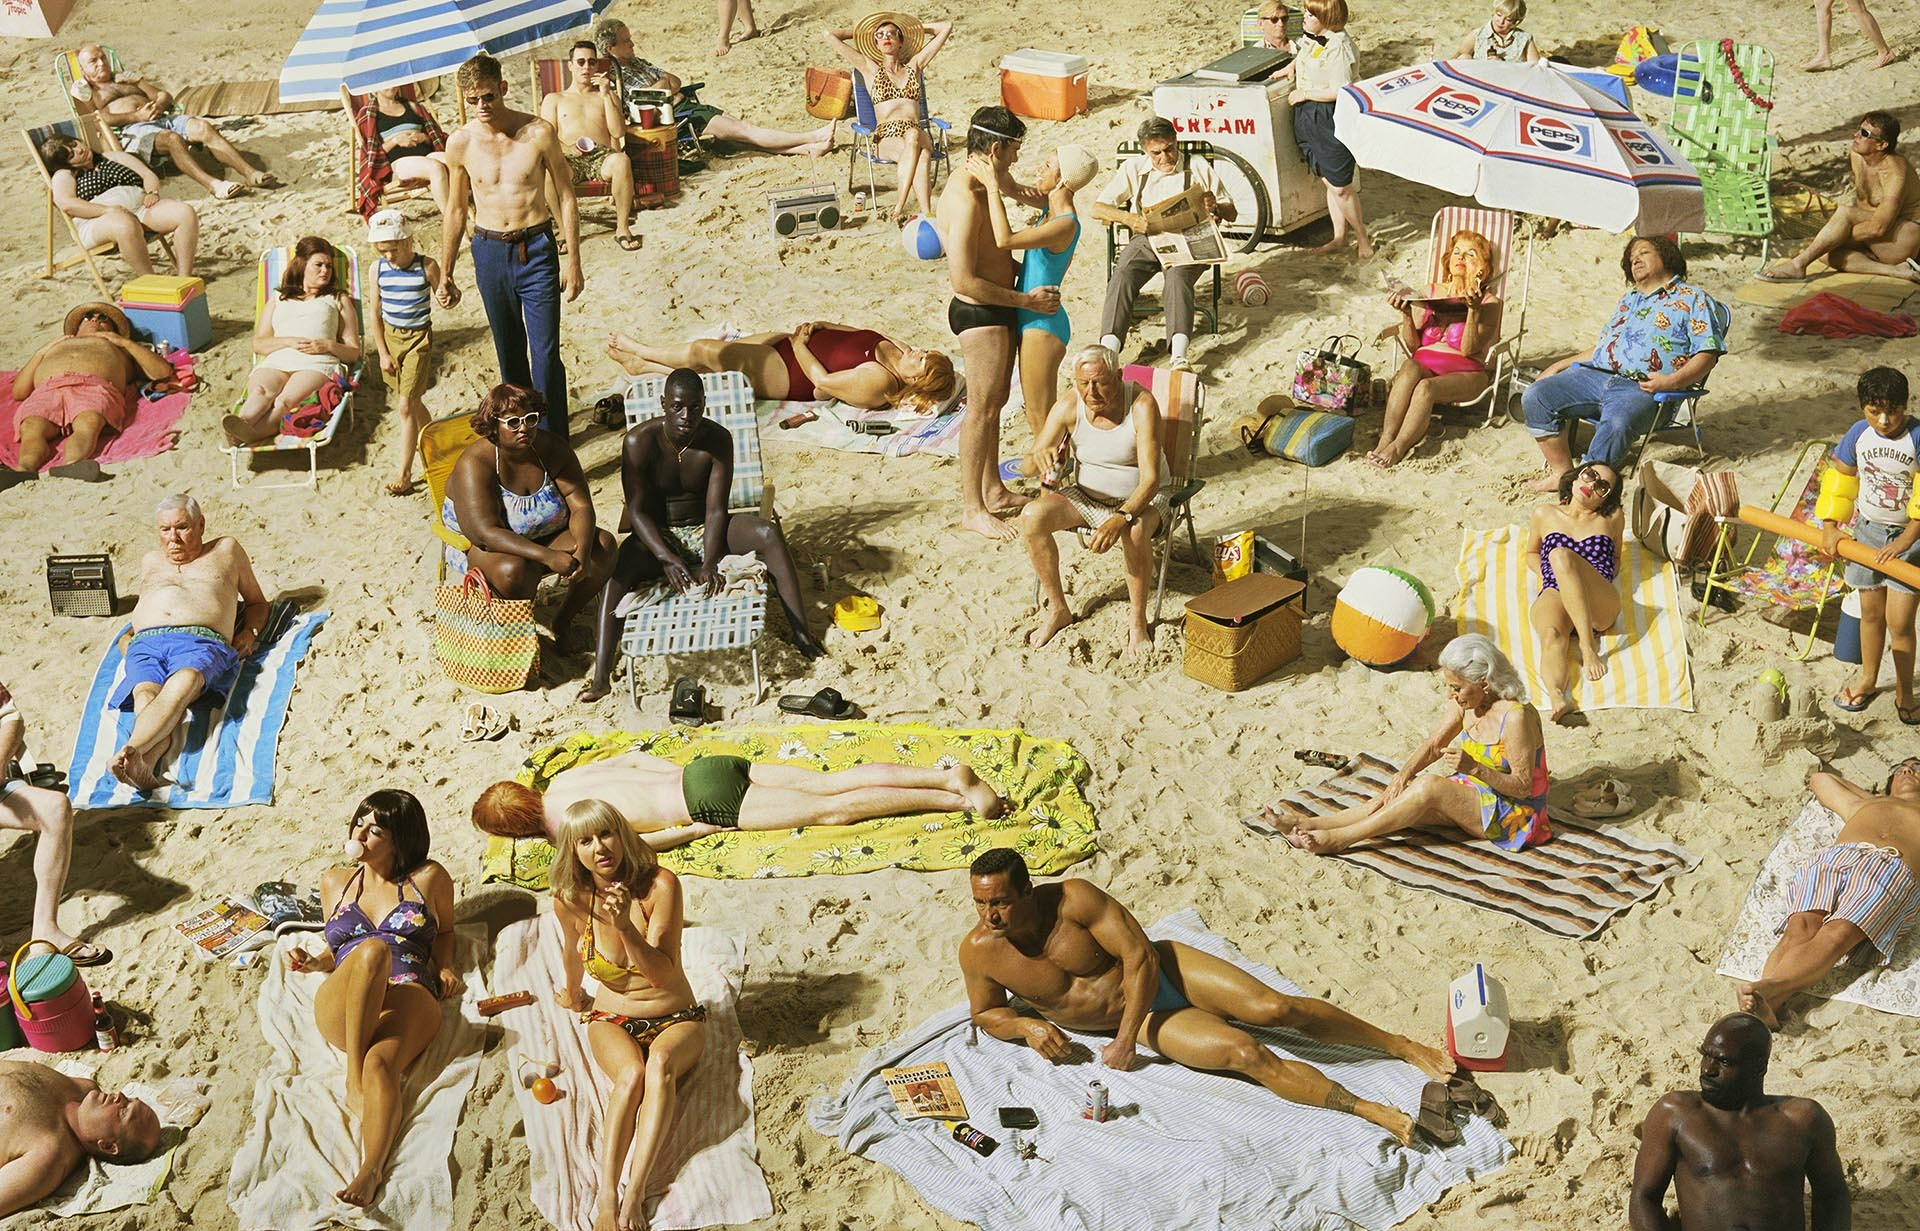 Alex Prager,  Crowd #3 (Pelican Beach) , 2013